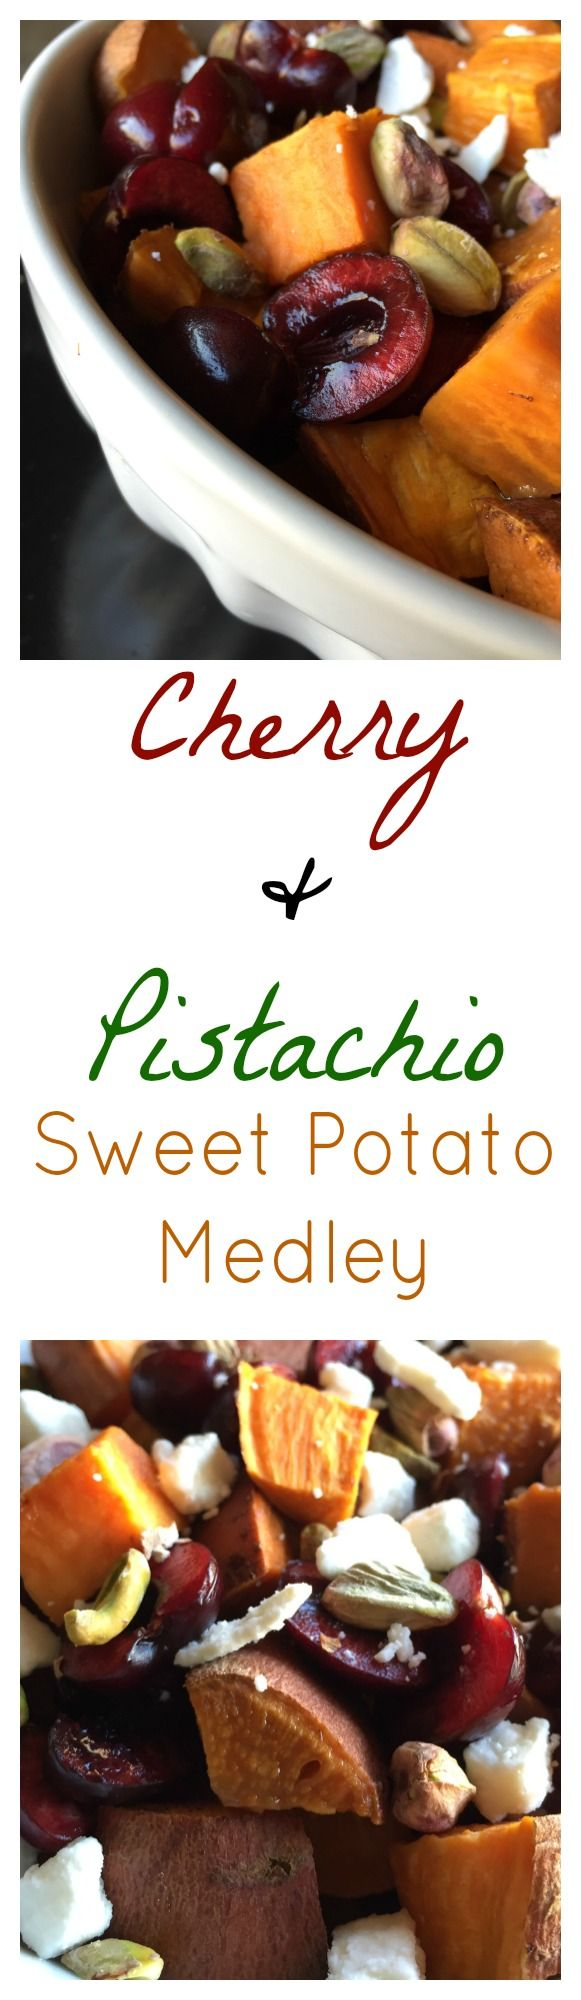 Cherry & Pistachio Sweet Potato | Only 130 Calories | Sweet, Crunchy & Savory |Dark, juicy cherries, crunchy pistachios paired with sweet potato & feta cheese |For Nutrition & Fitness Tips & MORE RECIPES, PLEASE SIGN UP for our FREE NEWSLETTER www.NutritionTwins.com